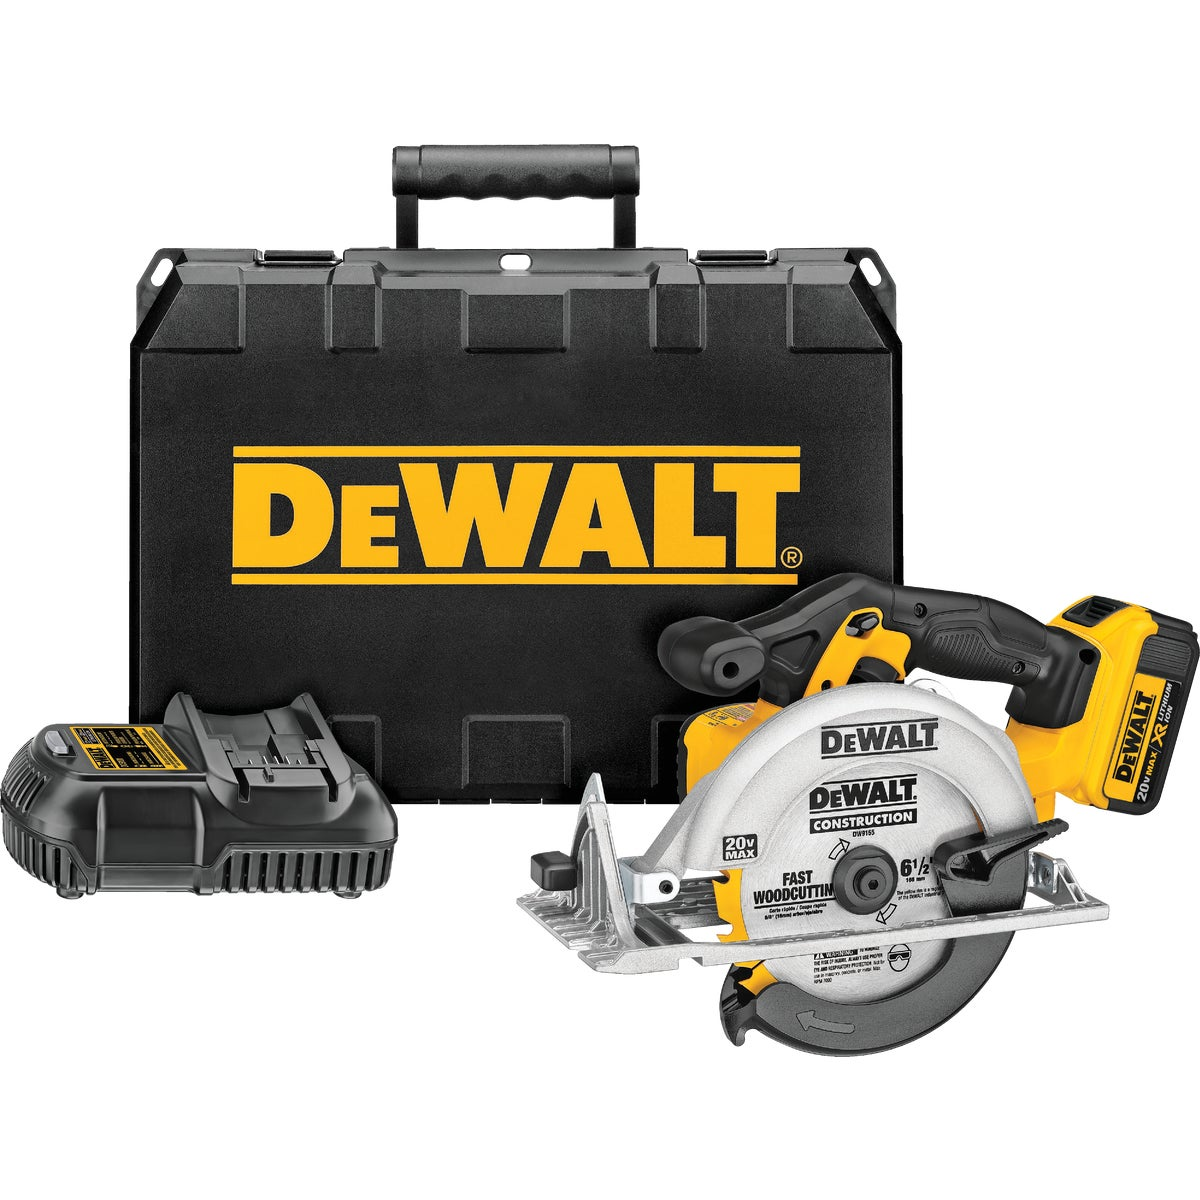 20V CIRCULAR SAW - DCS391M1 by DeWalt